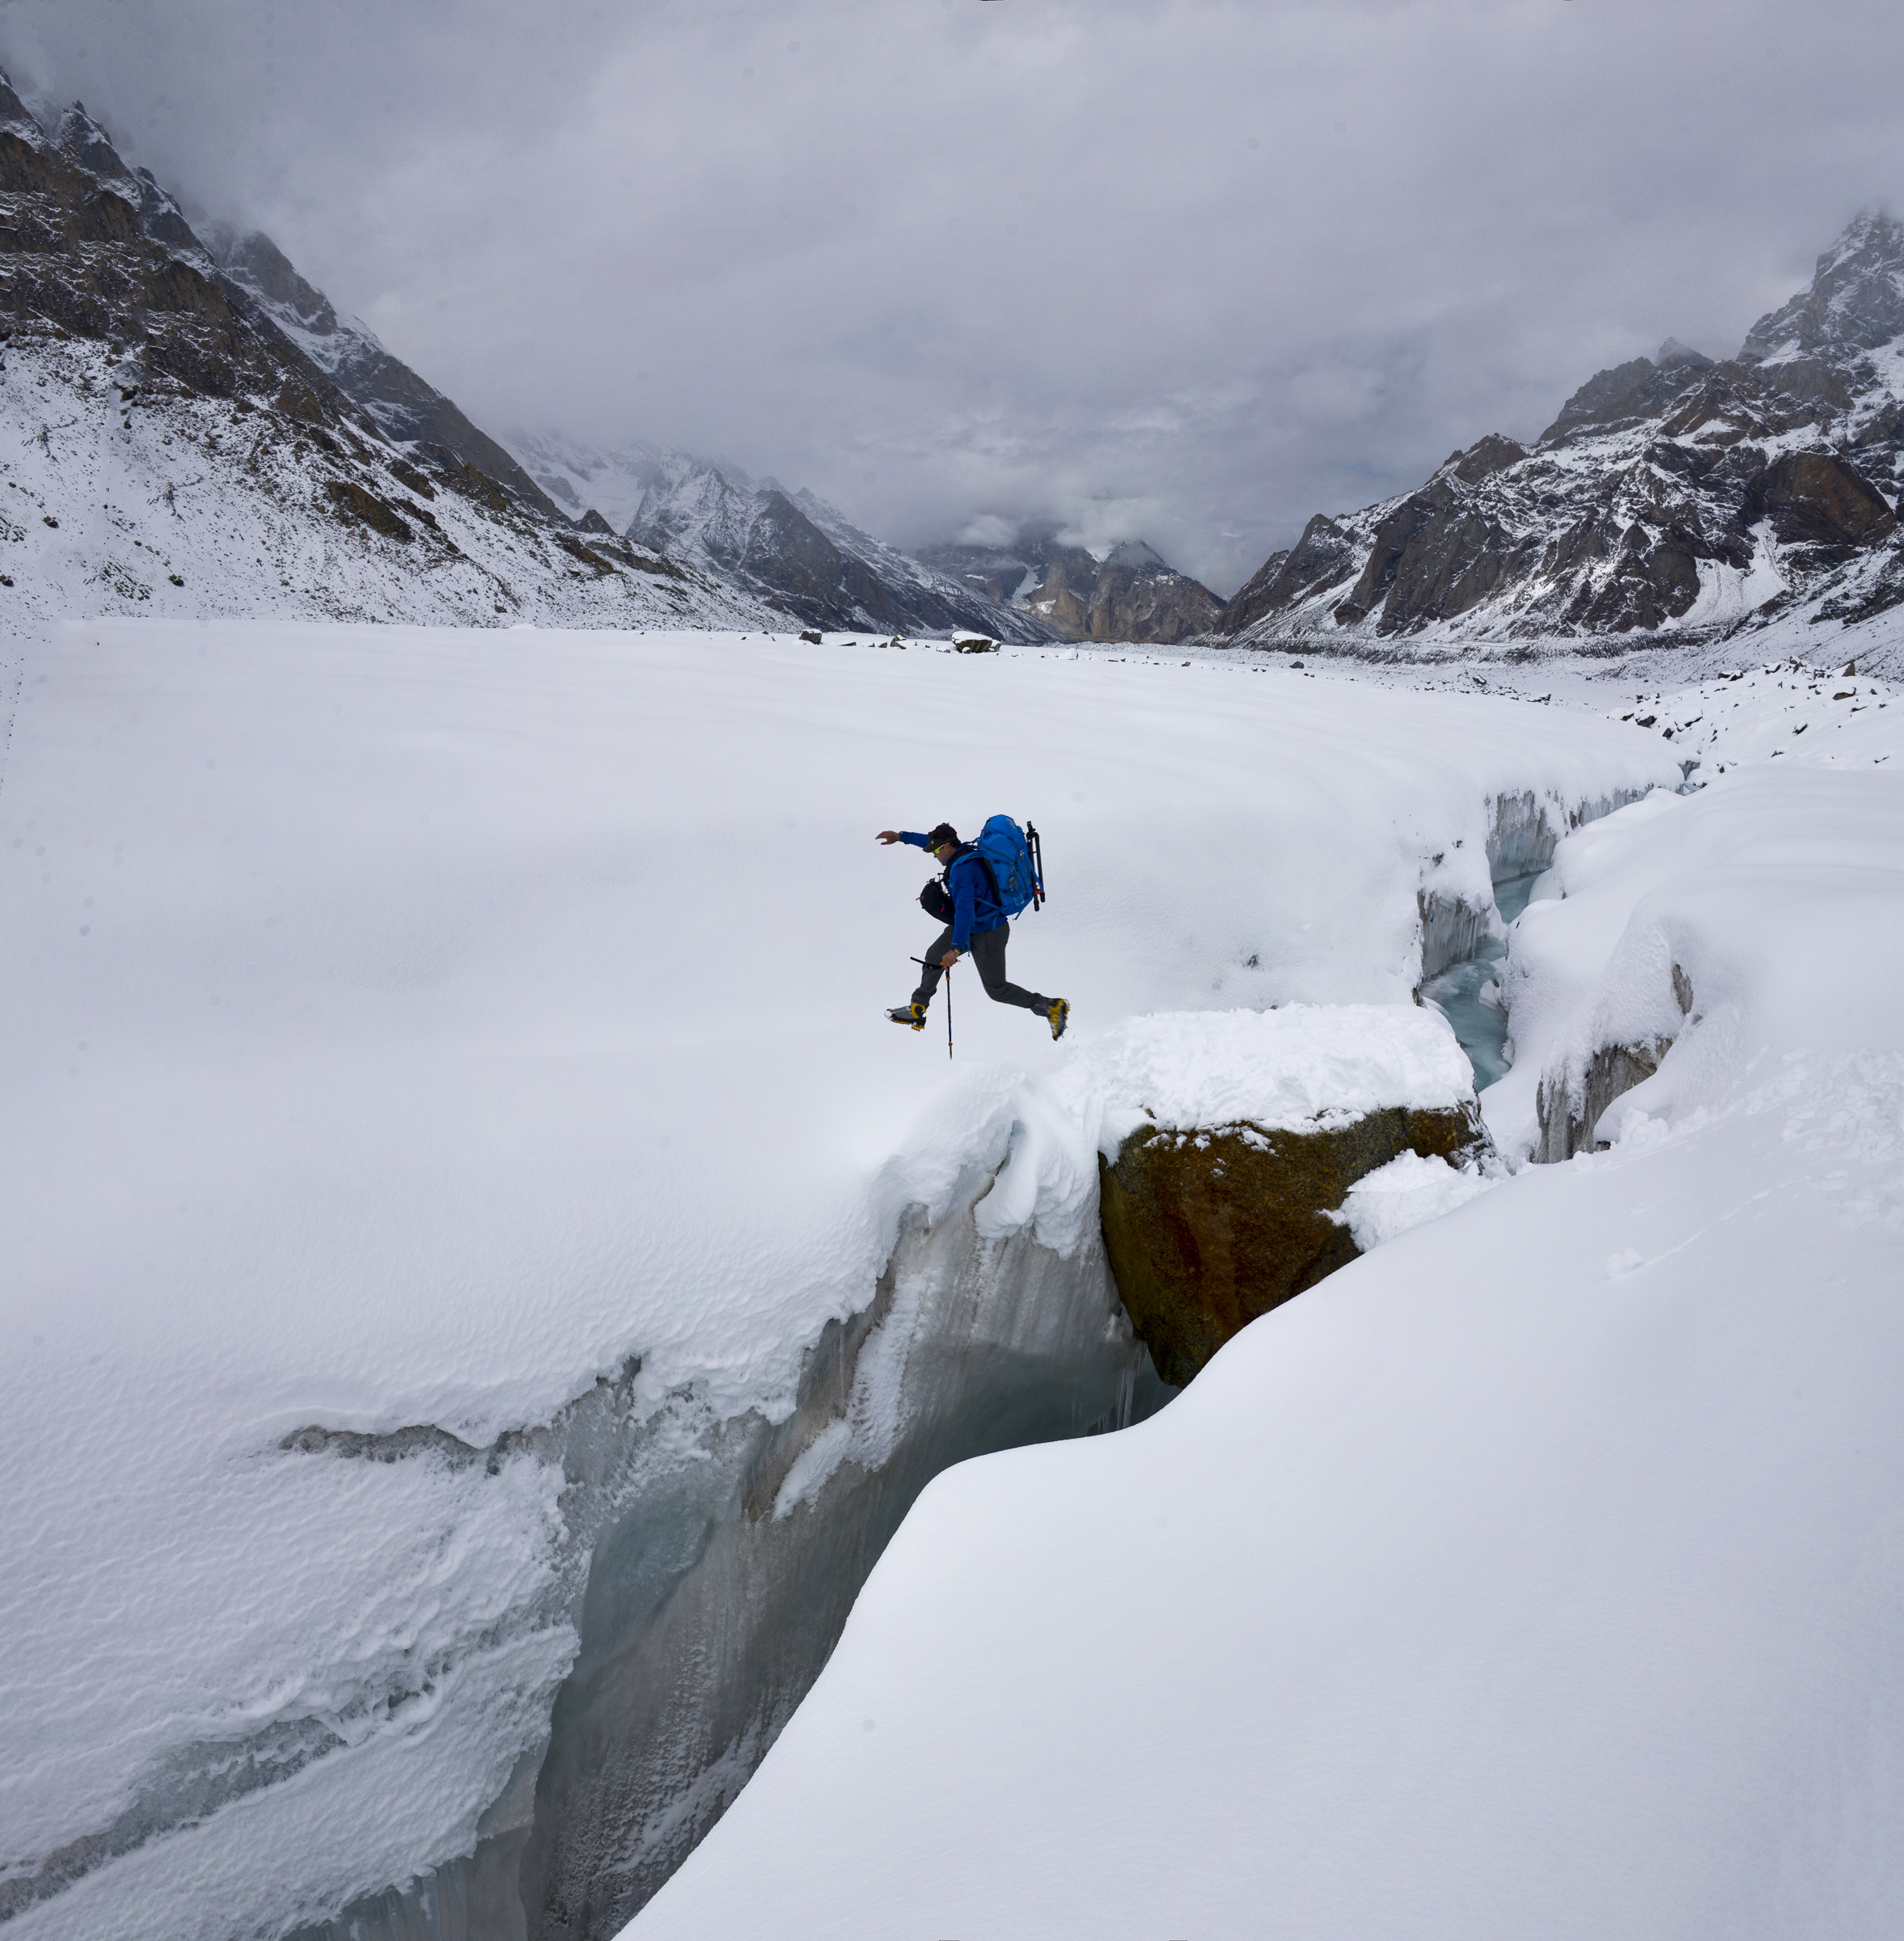 Pete McBride leaps a crevasse on the Gangotri Glacier, Uttarakhand, India. Photo © Jake Norton.